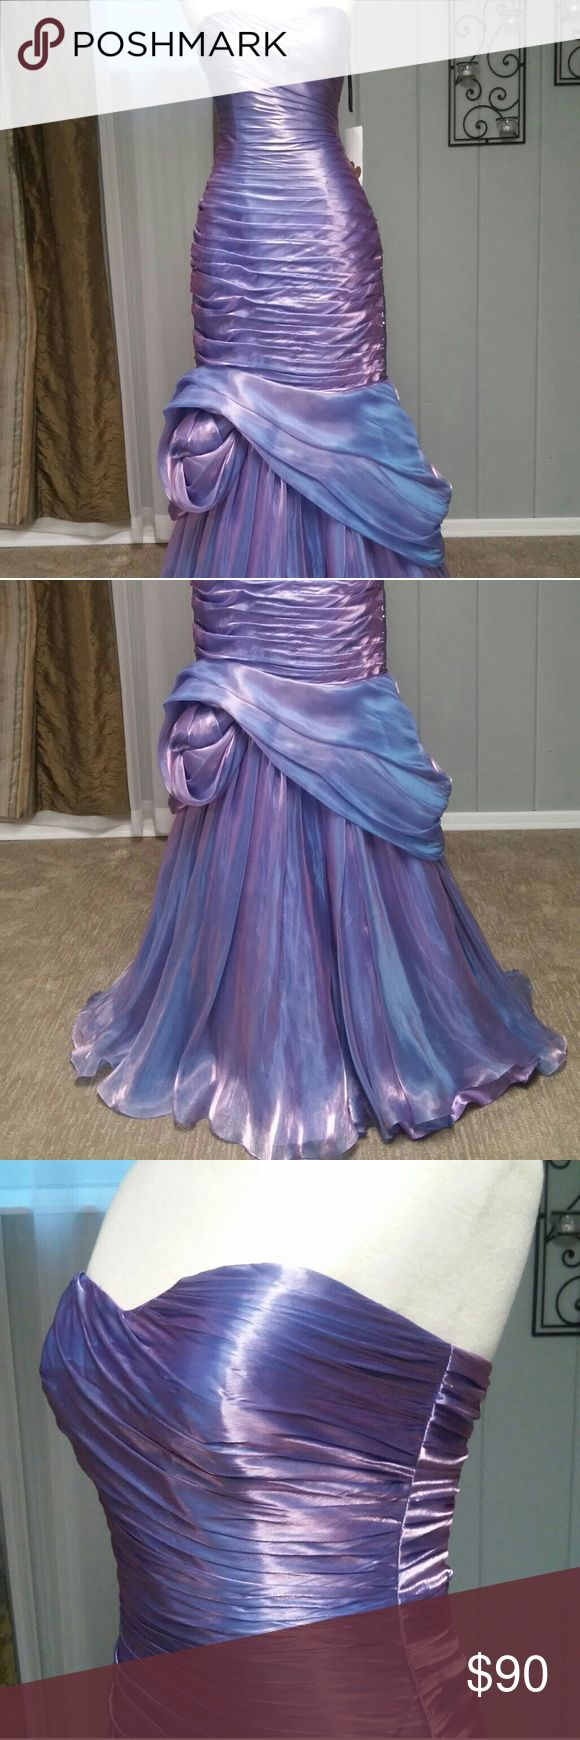 Violet Red (Purple) Floor-Length Gown   Size 4 This is a stunning floor length gown in iridescent violet red. This would be perfect for any formal party like prom, a formal dinner or holiday party, pageant  etc.  - Size 4 - Silky organza fabric - Floor length, mermaid style - Fully lined - Built in layer of tooling for fullness in the skirt -  Like new - still has original tags - Designer: Princrss Proms - Original ticketed price: $539  Message me if you're interested or have any questions…